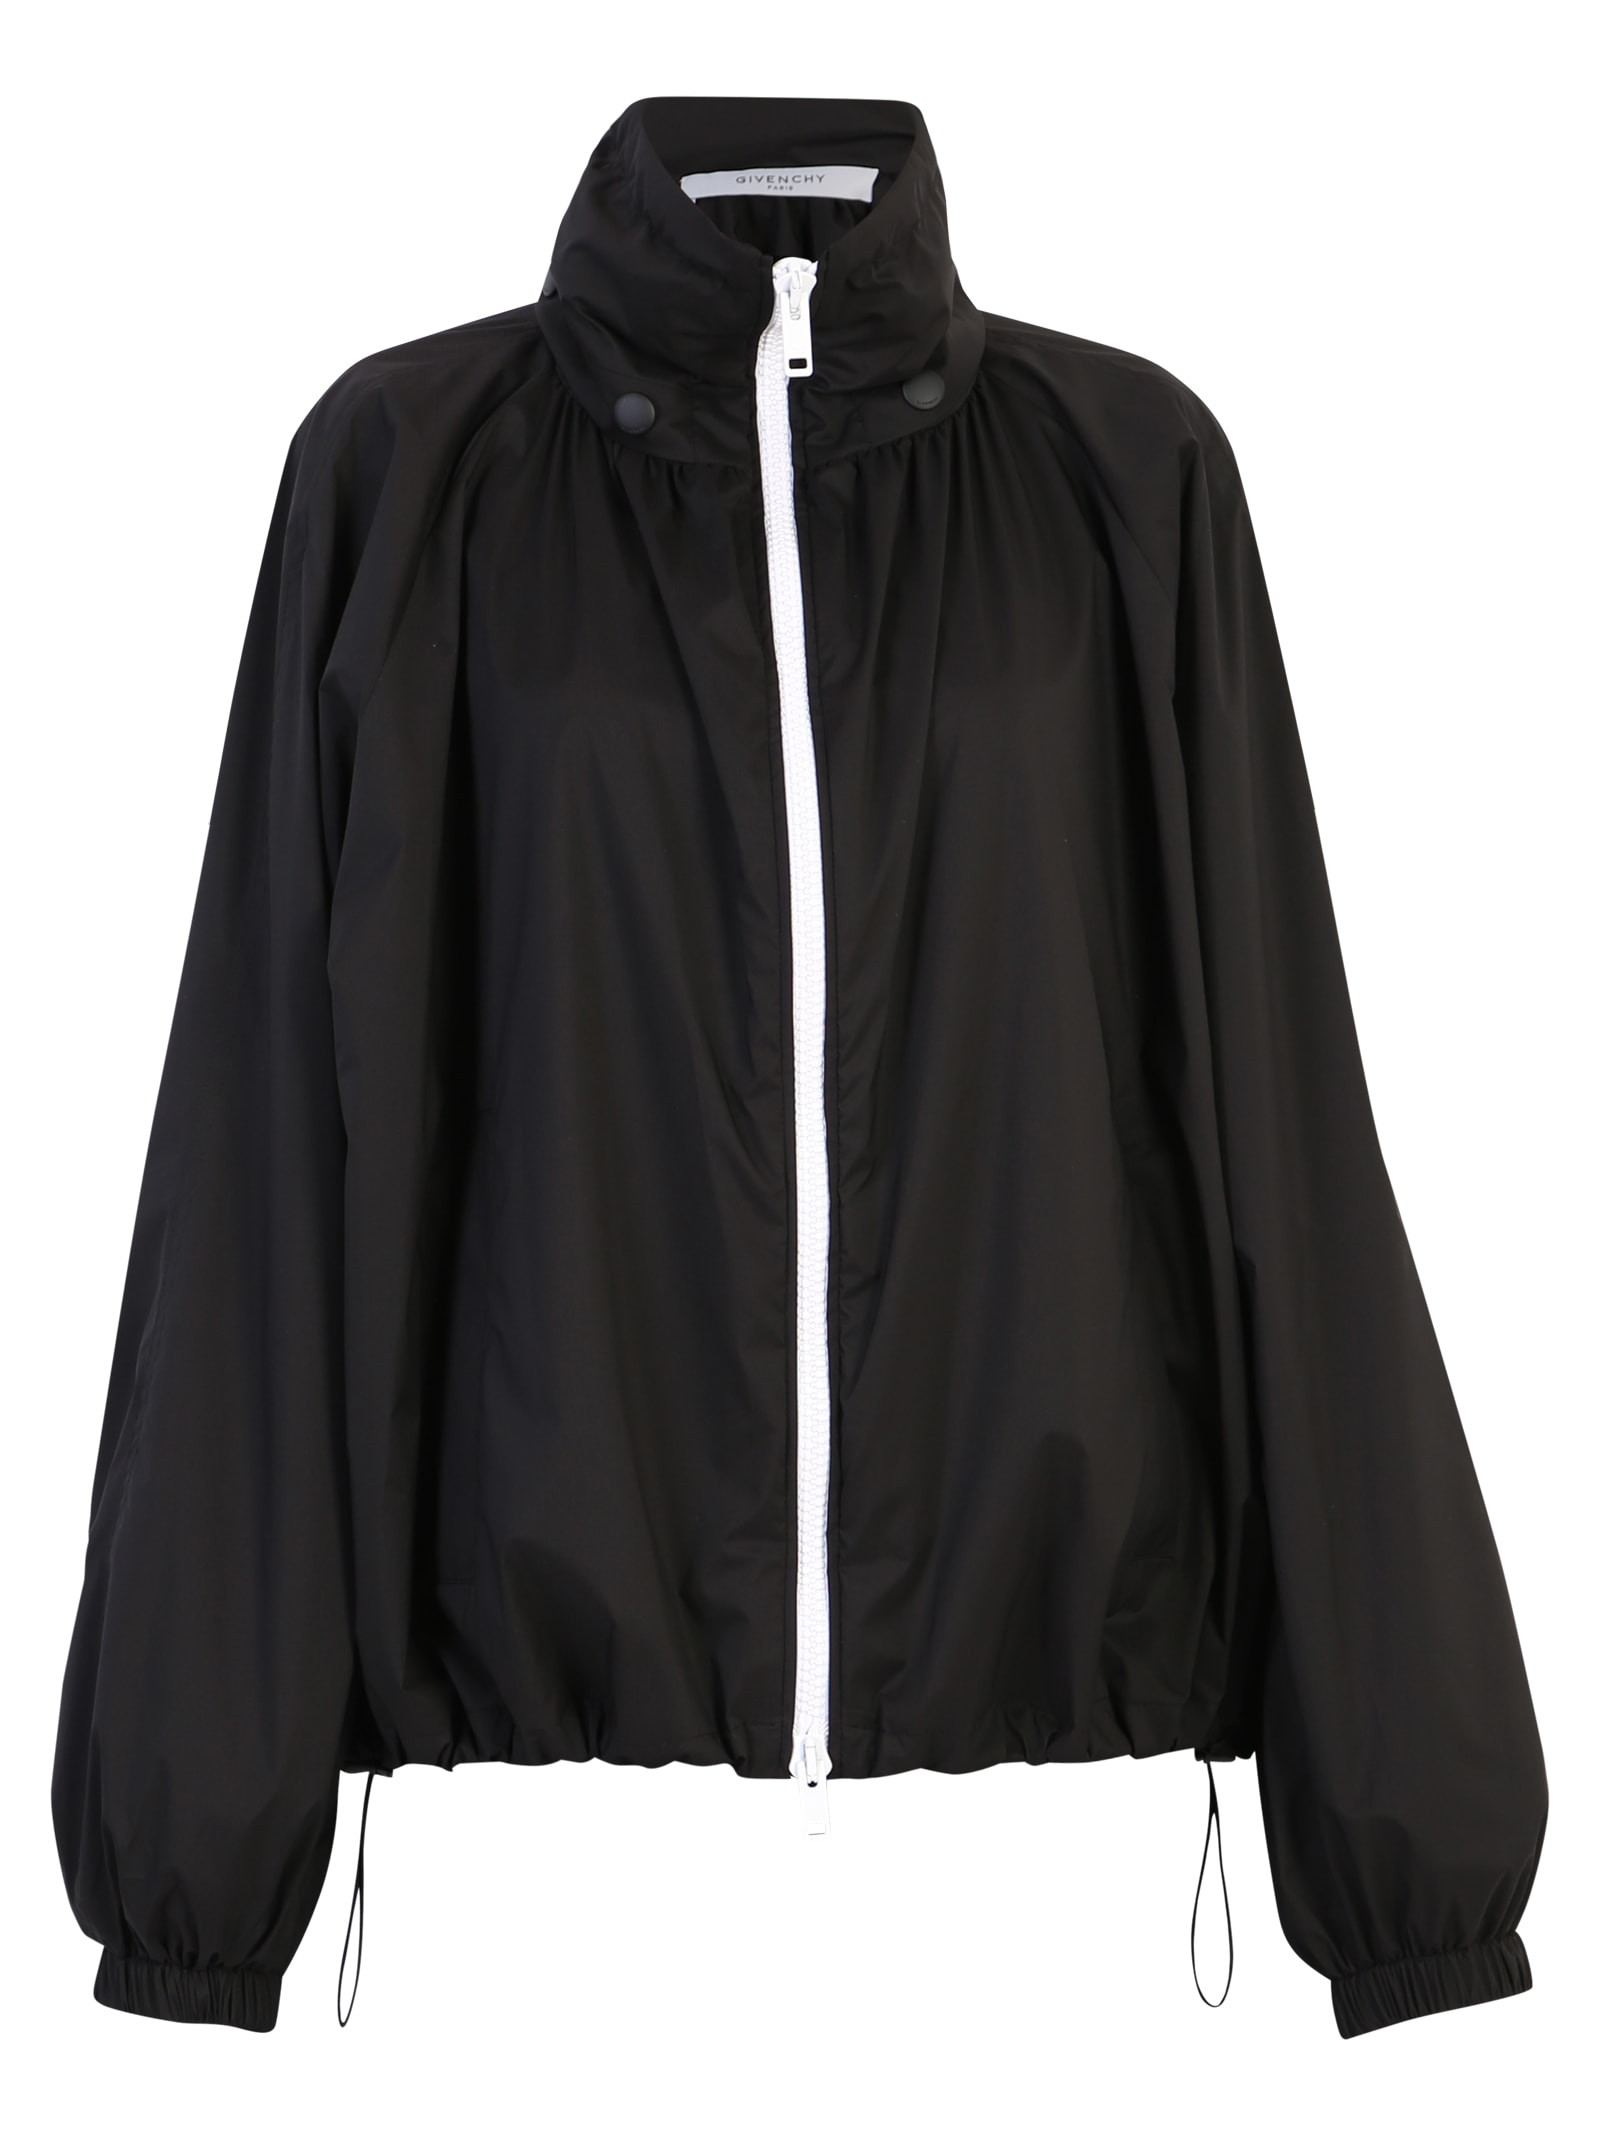 Givenchy Zipped Jacket